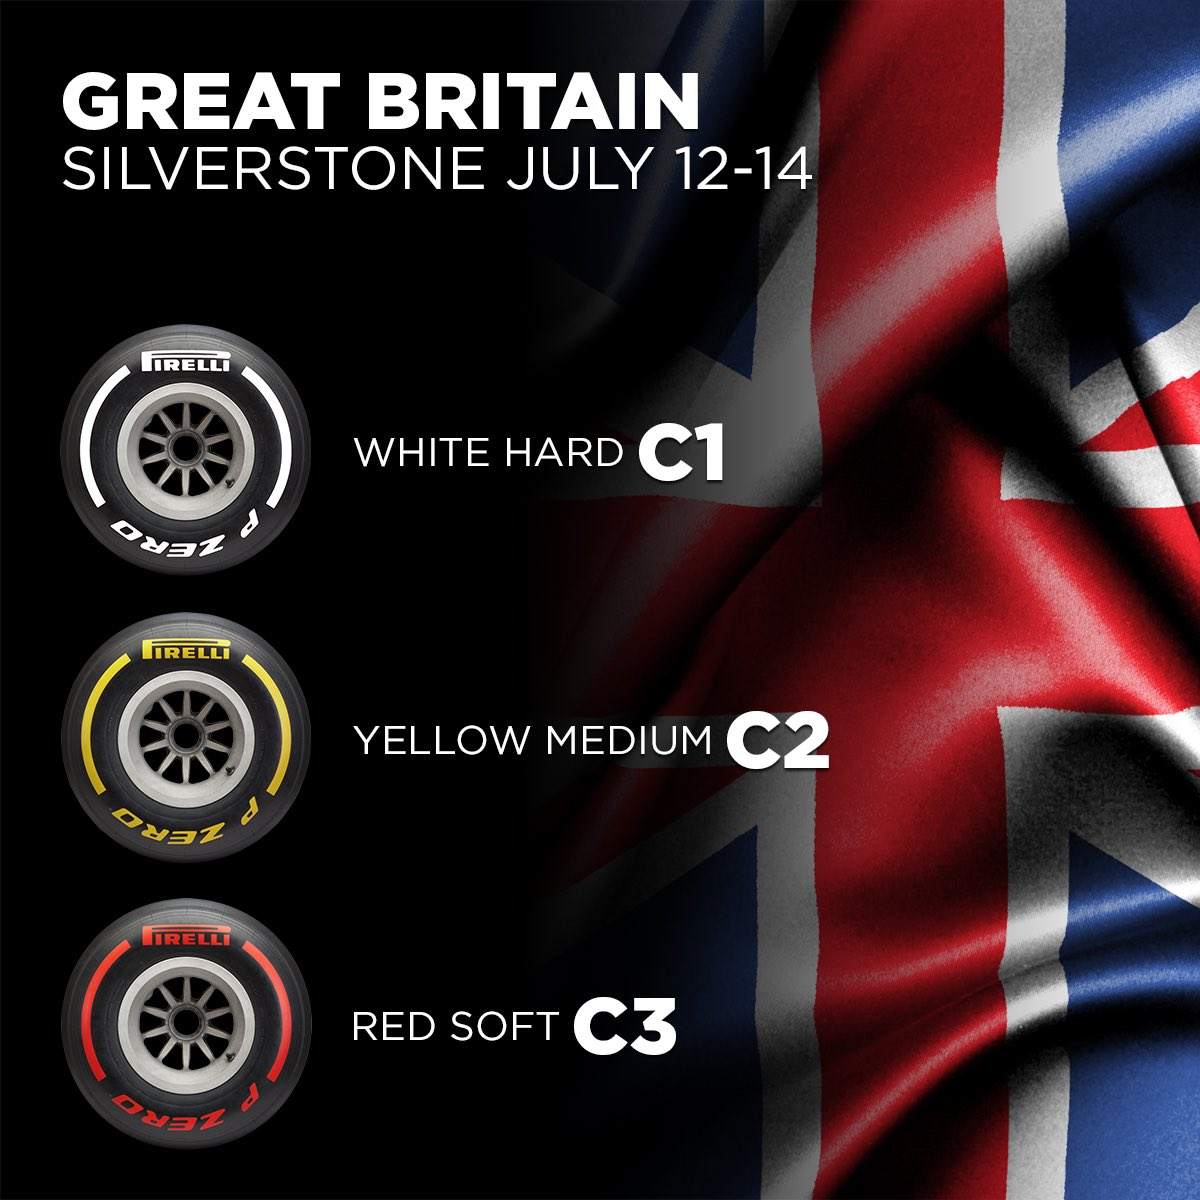 Pirelli Confirms Tyre Compounds For 2019 British GP